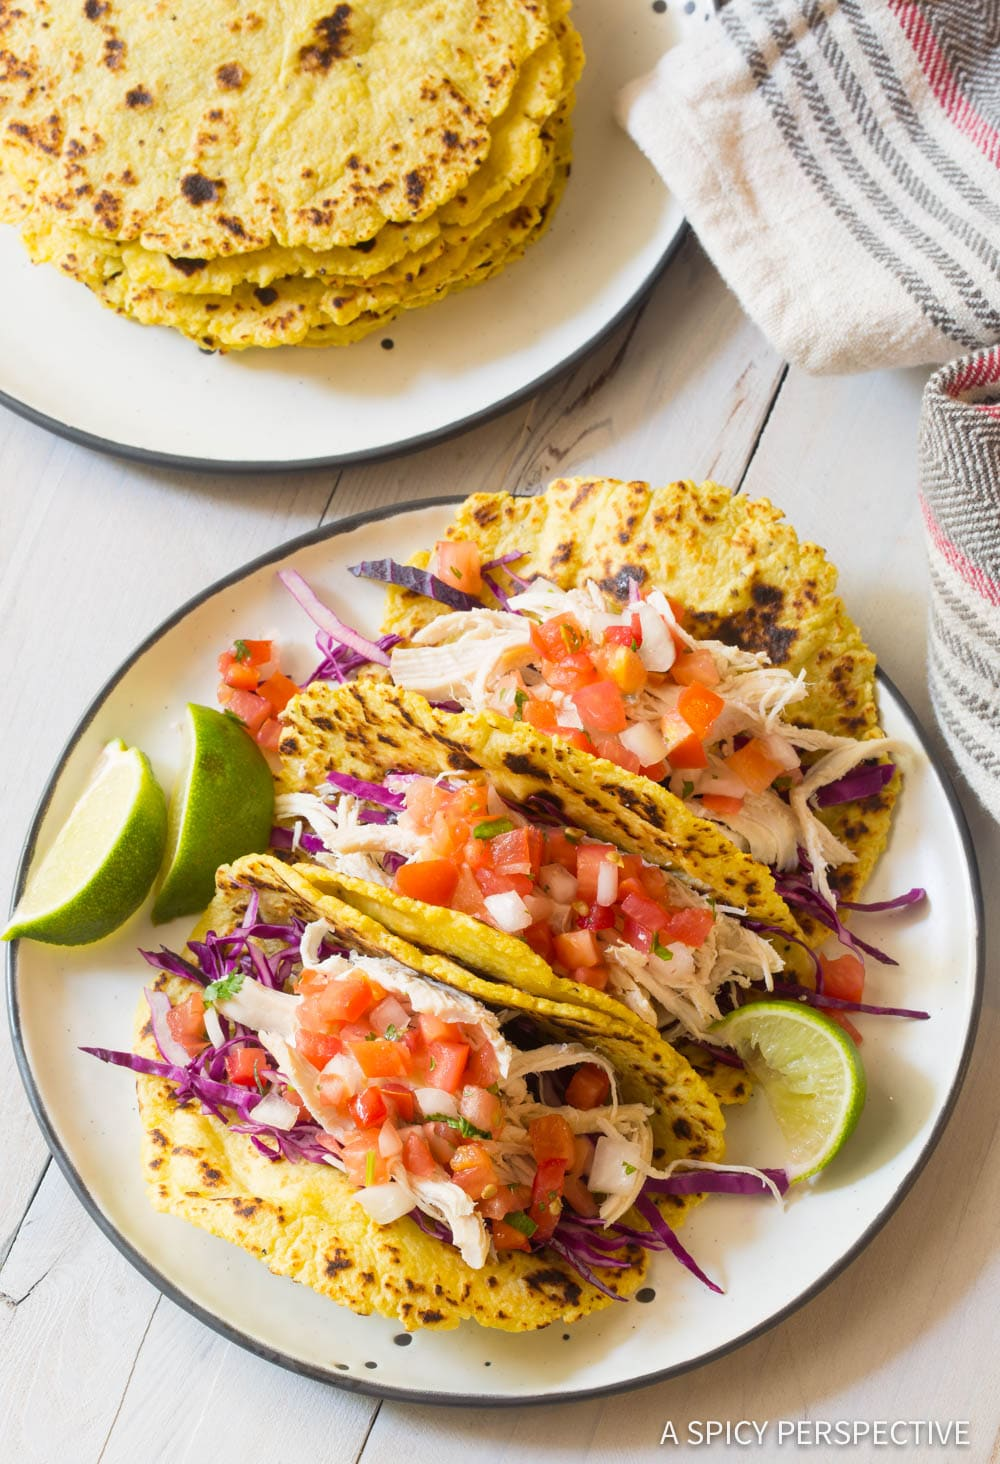 2-Ingredient Magic Plantain Tortillas Recipe #ASpicyPerspective #Paleo #GlutenFree #GrainFree #DairyFree